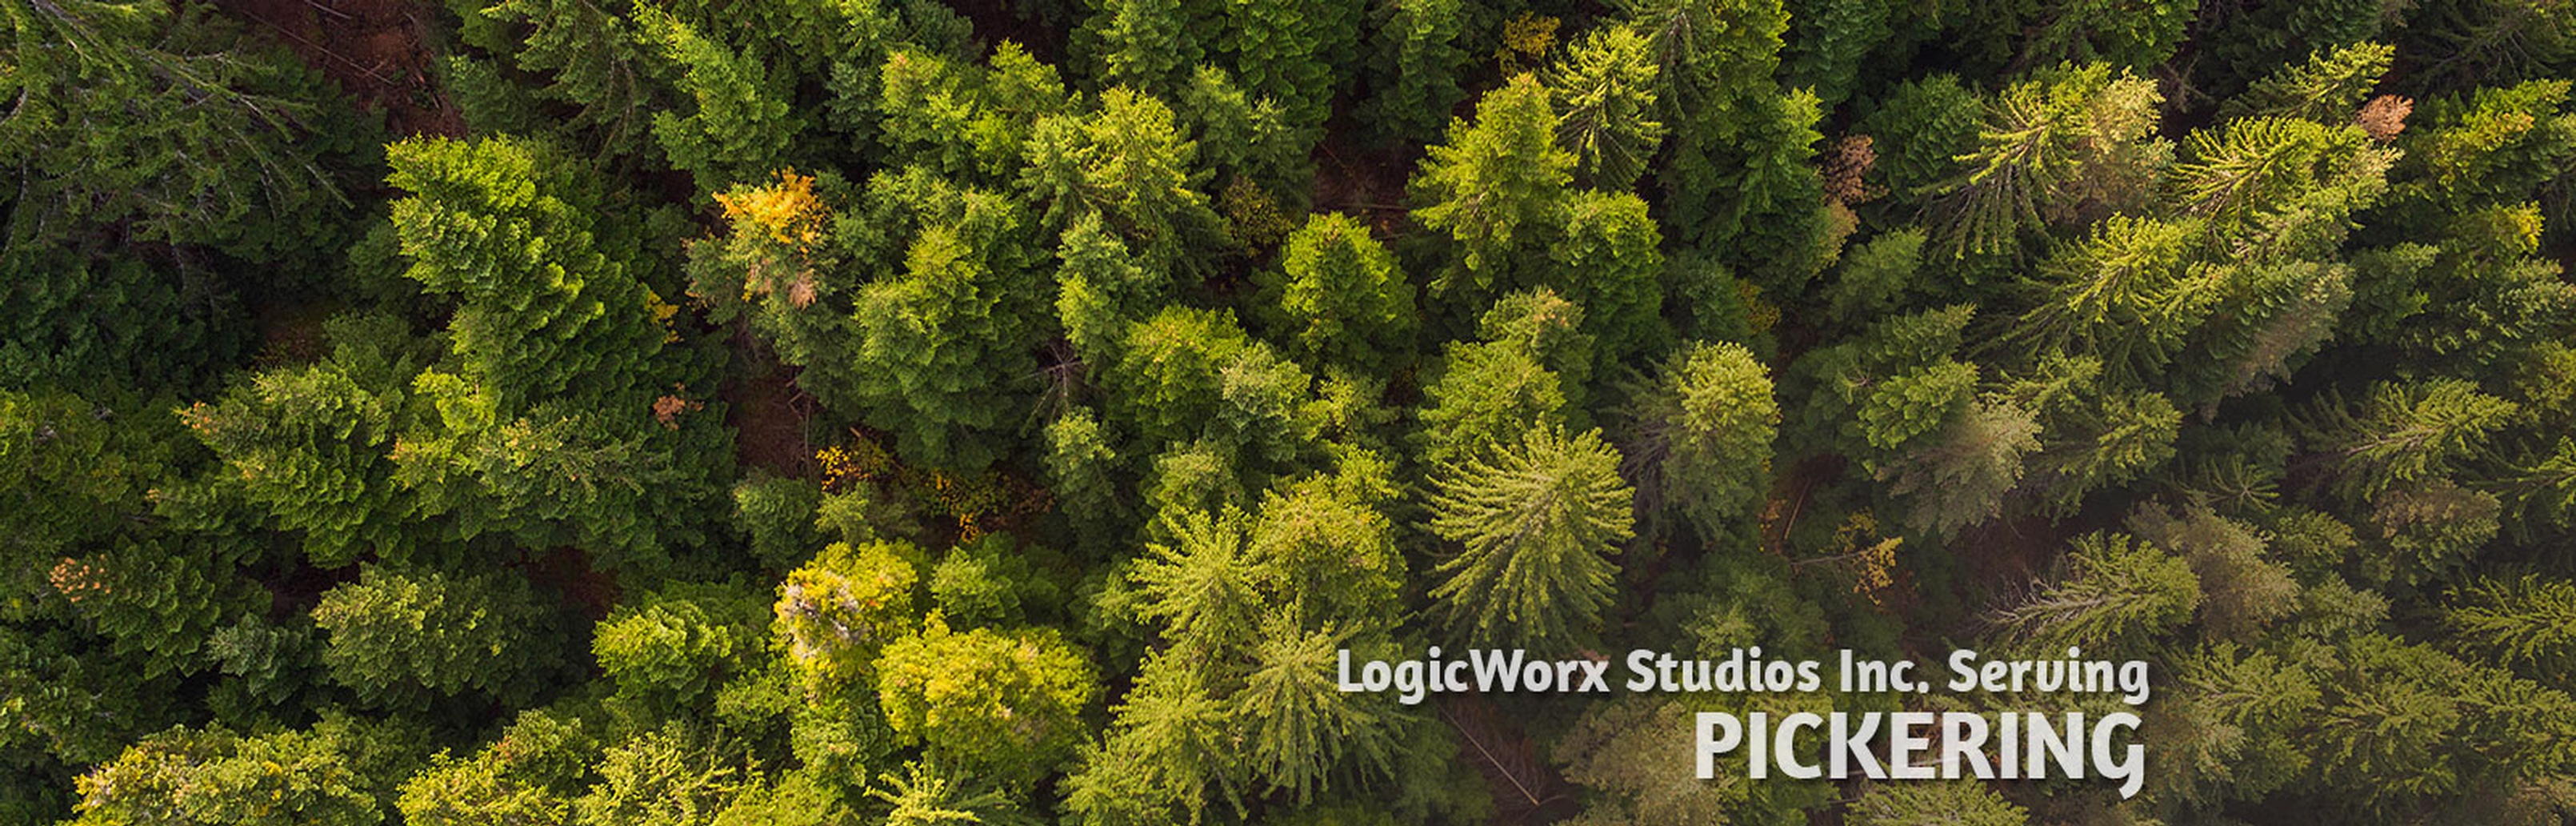 LogicWorx Studios Inc. serving Pickering